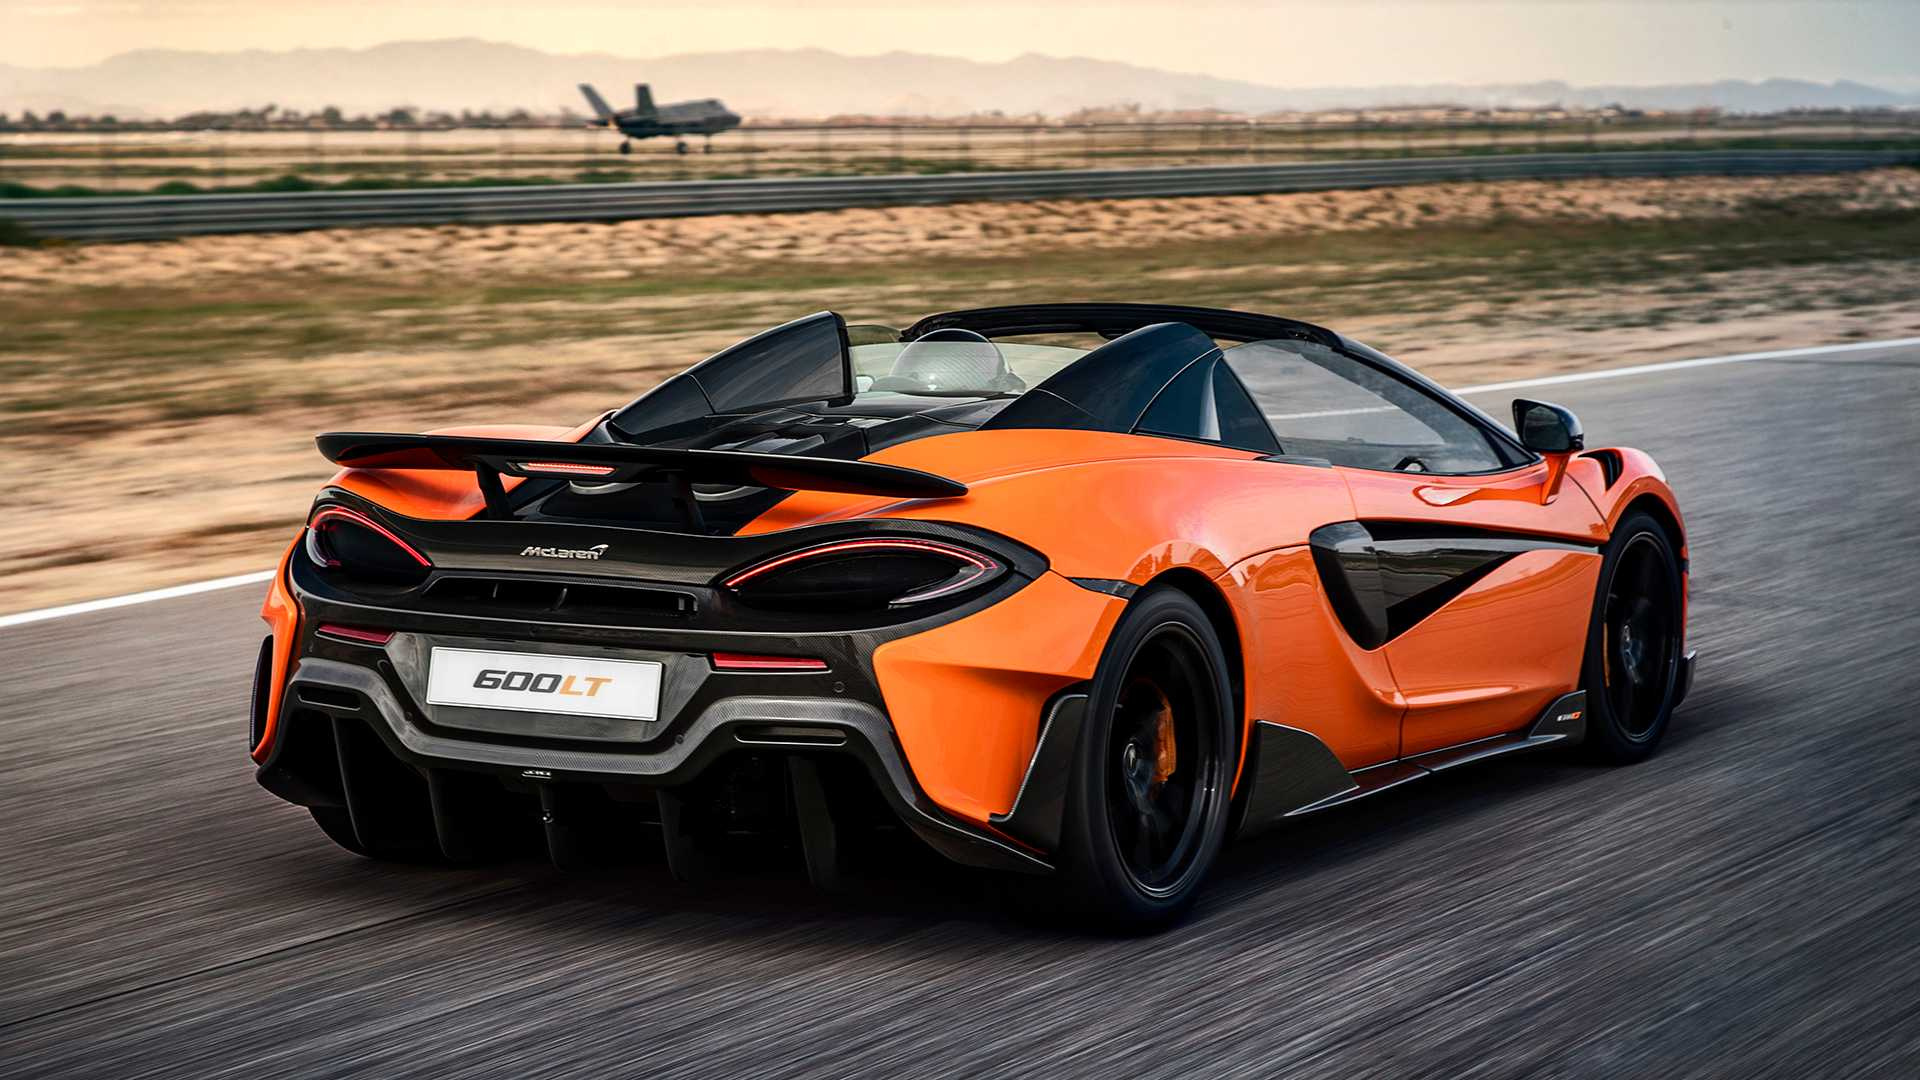 30 The Best 2019 Mclaren Pricing